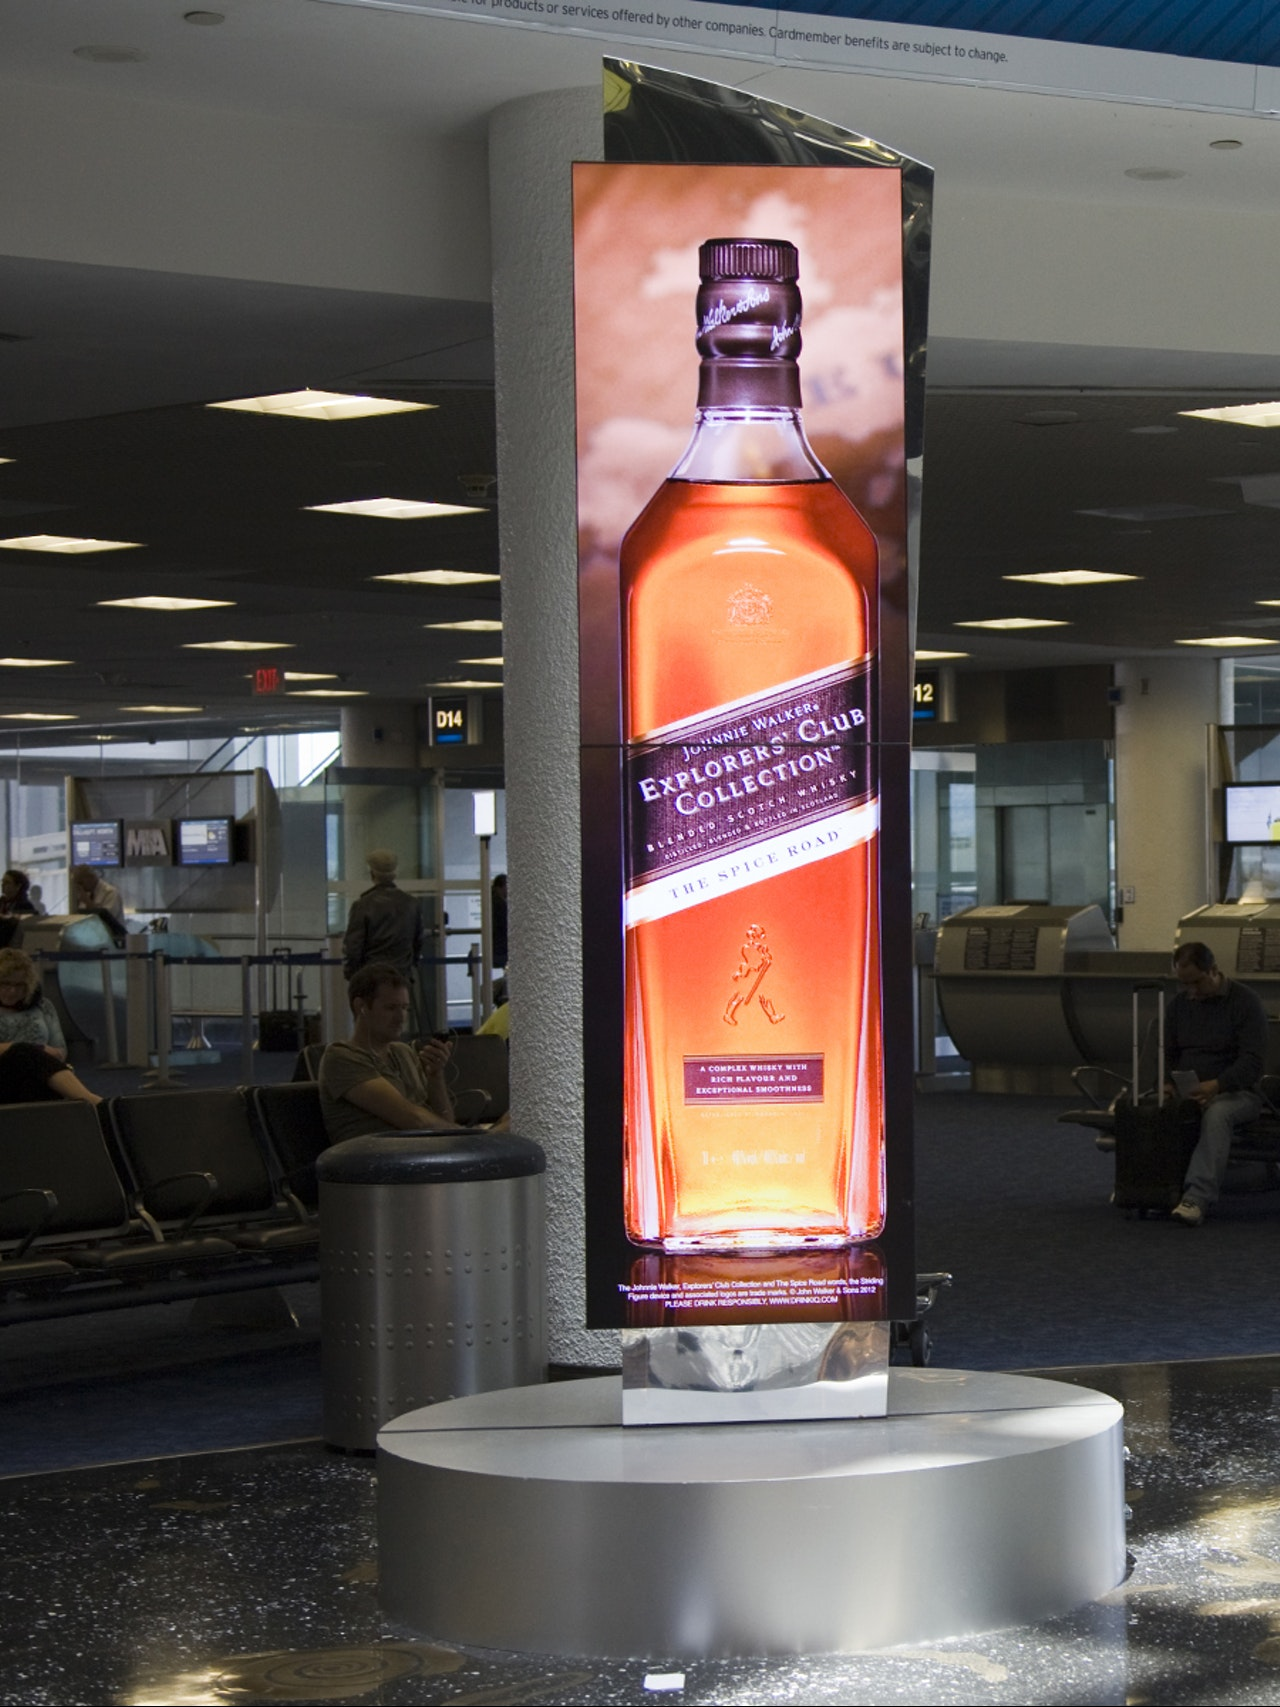 JOHNNIE WALKER DIGITAL TOTEM